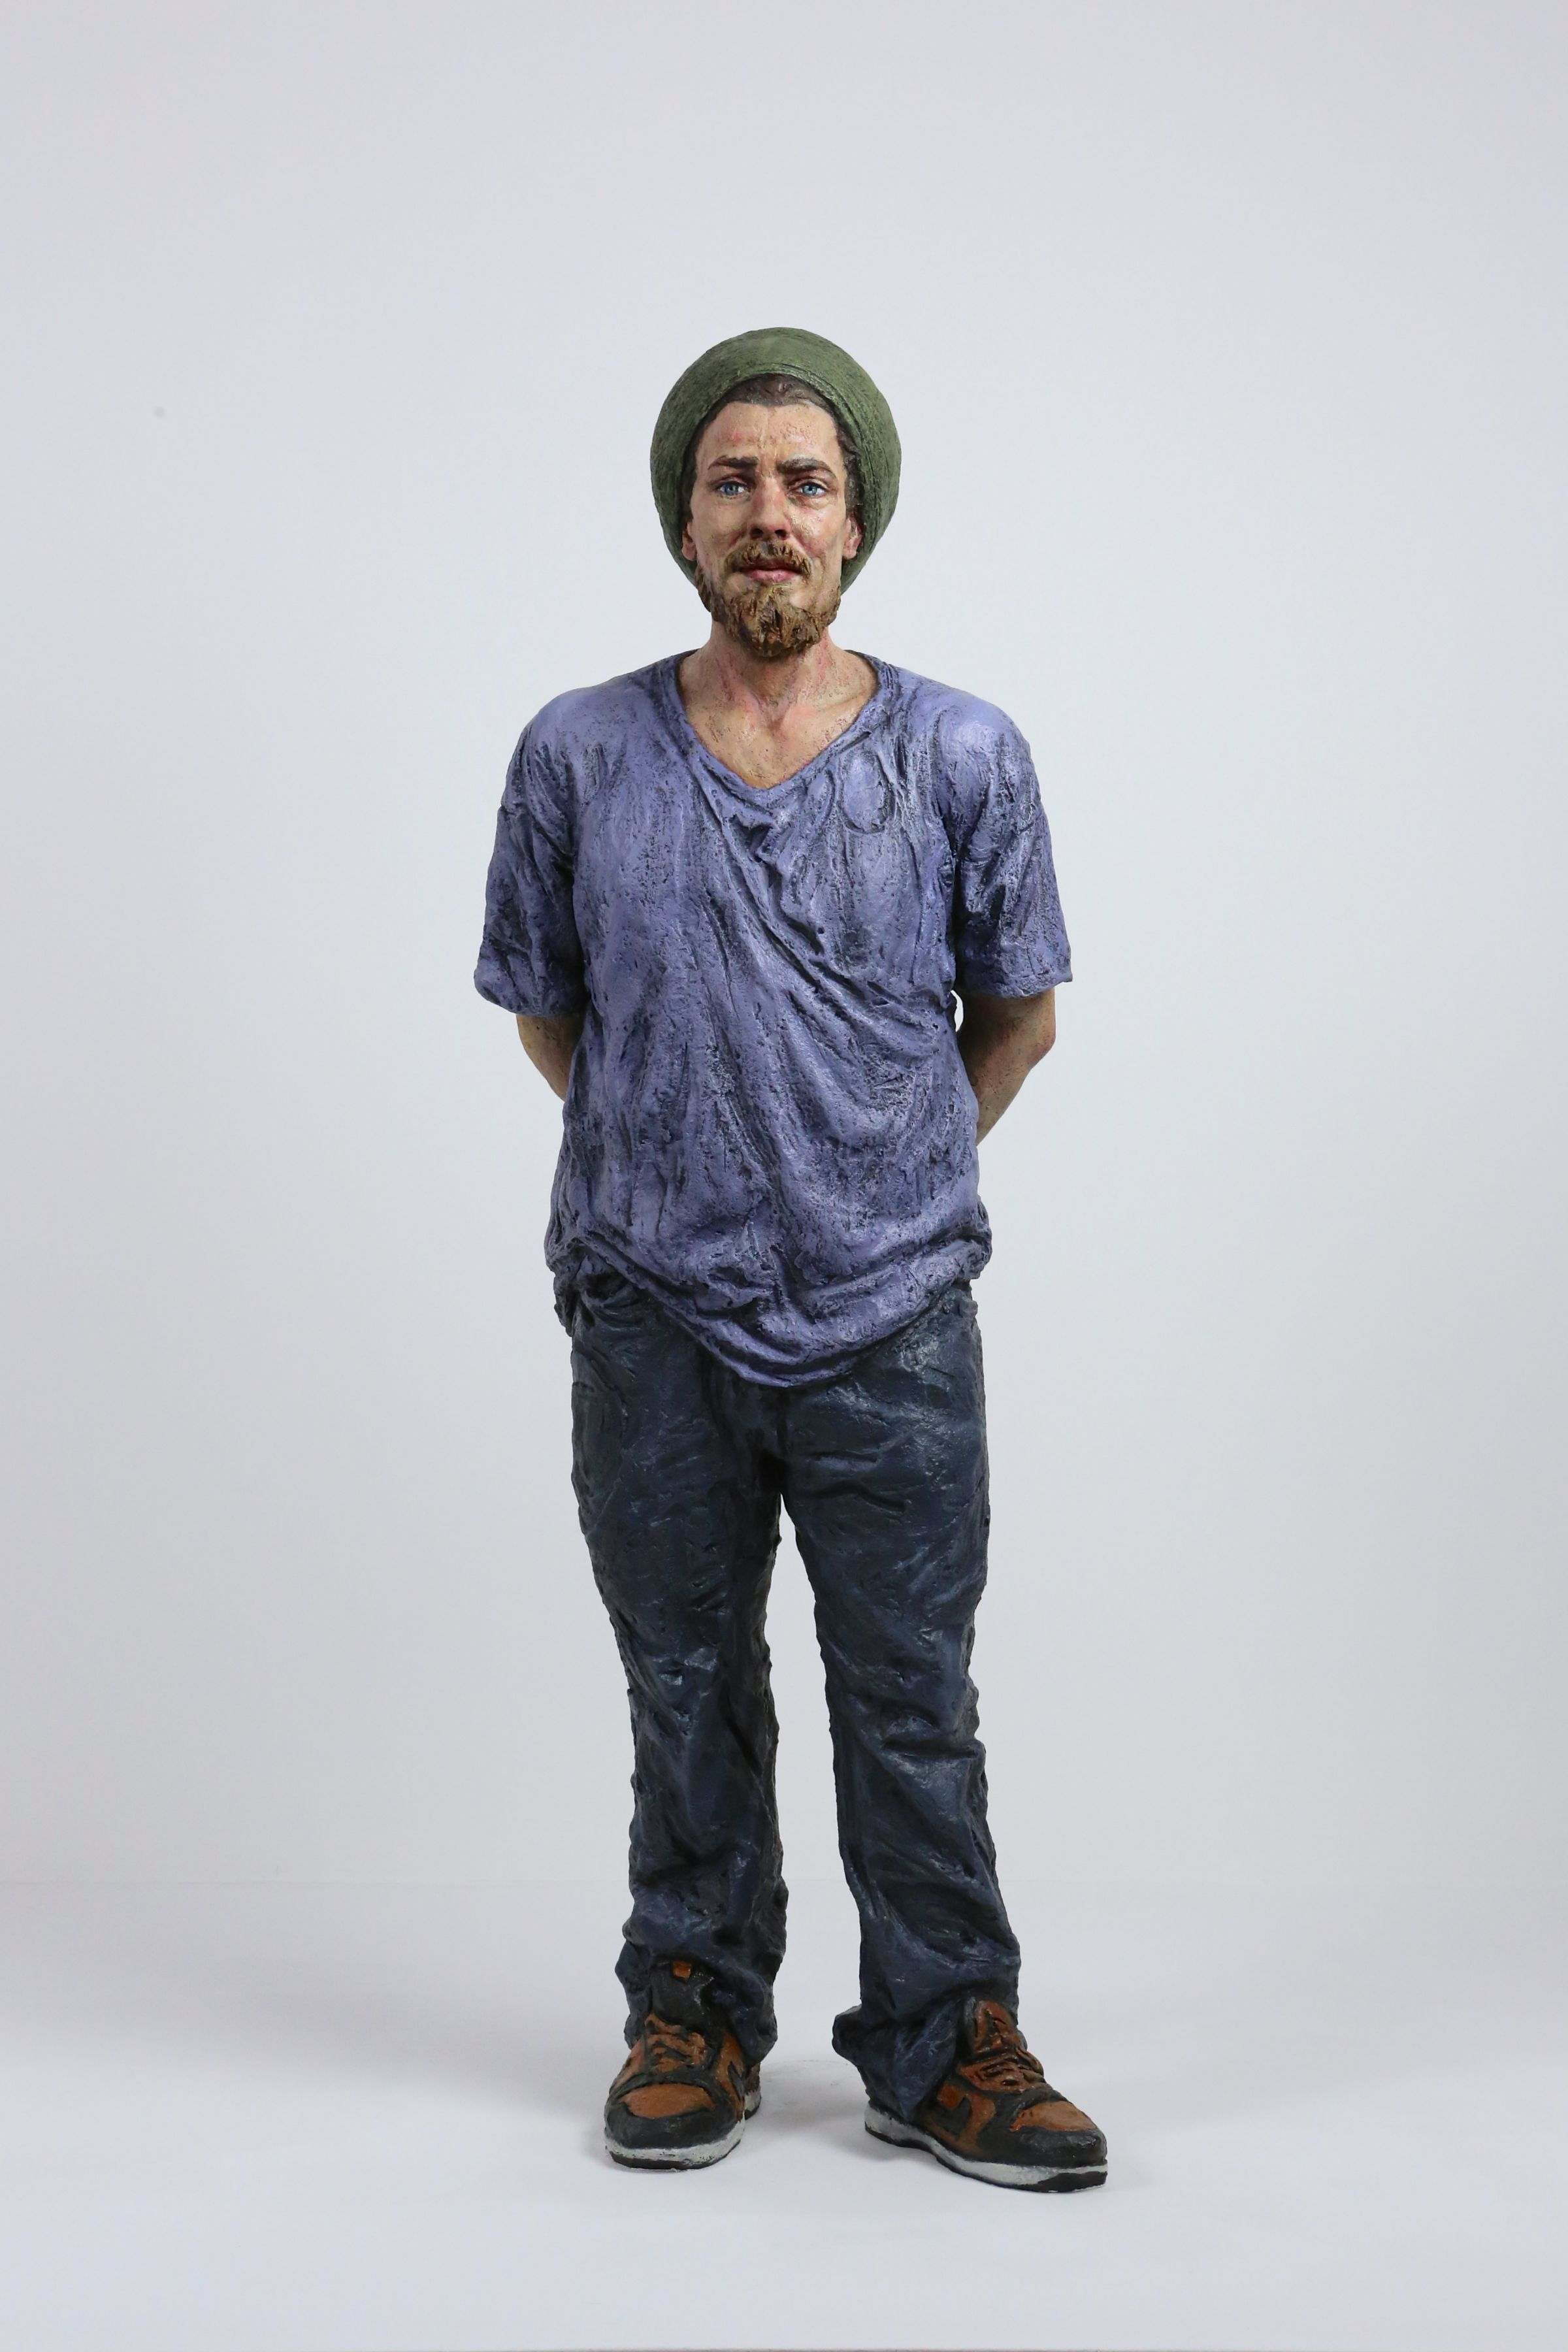 sean henry, LM, 2014, bronze, oil paint, 32 x 11 x 9 inches, Edition of 6